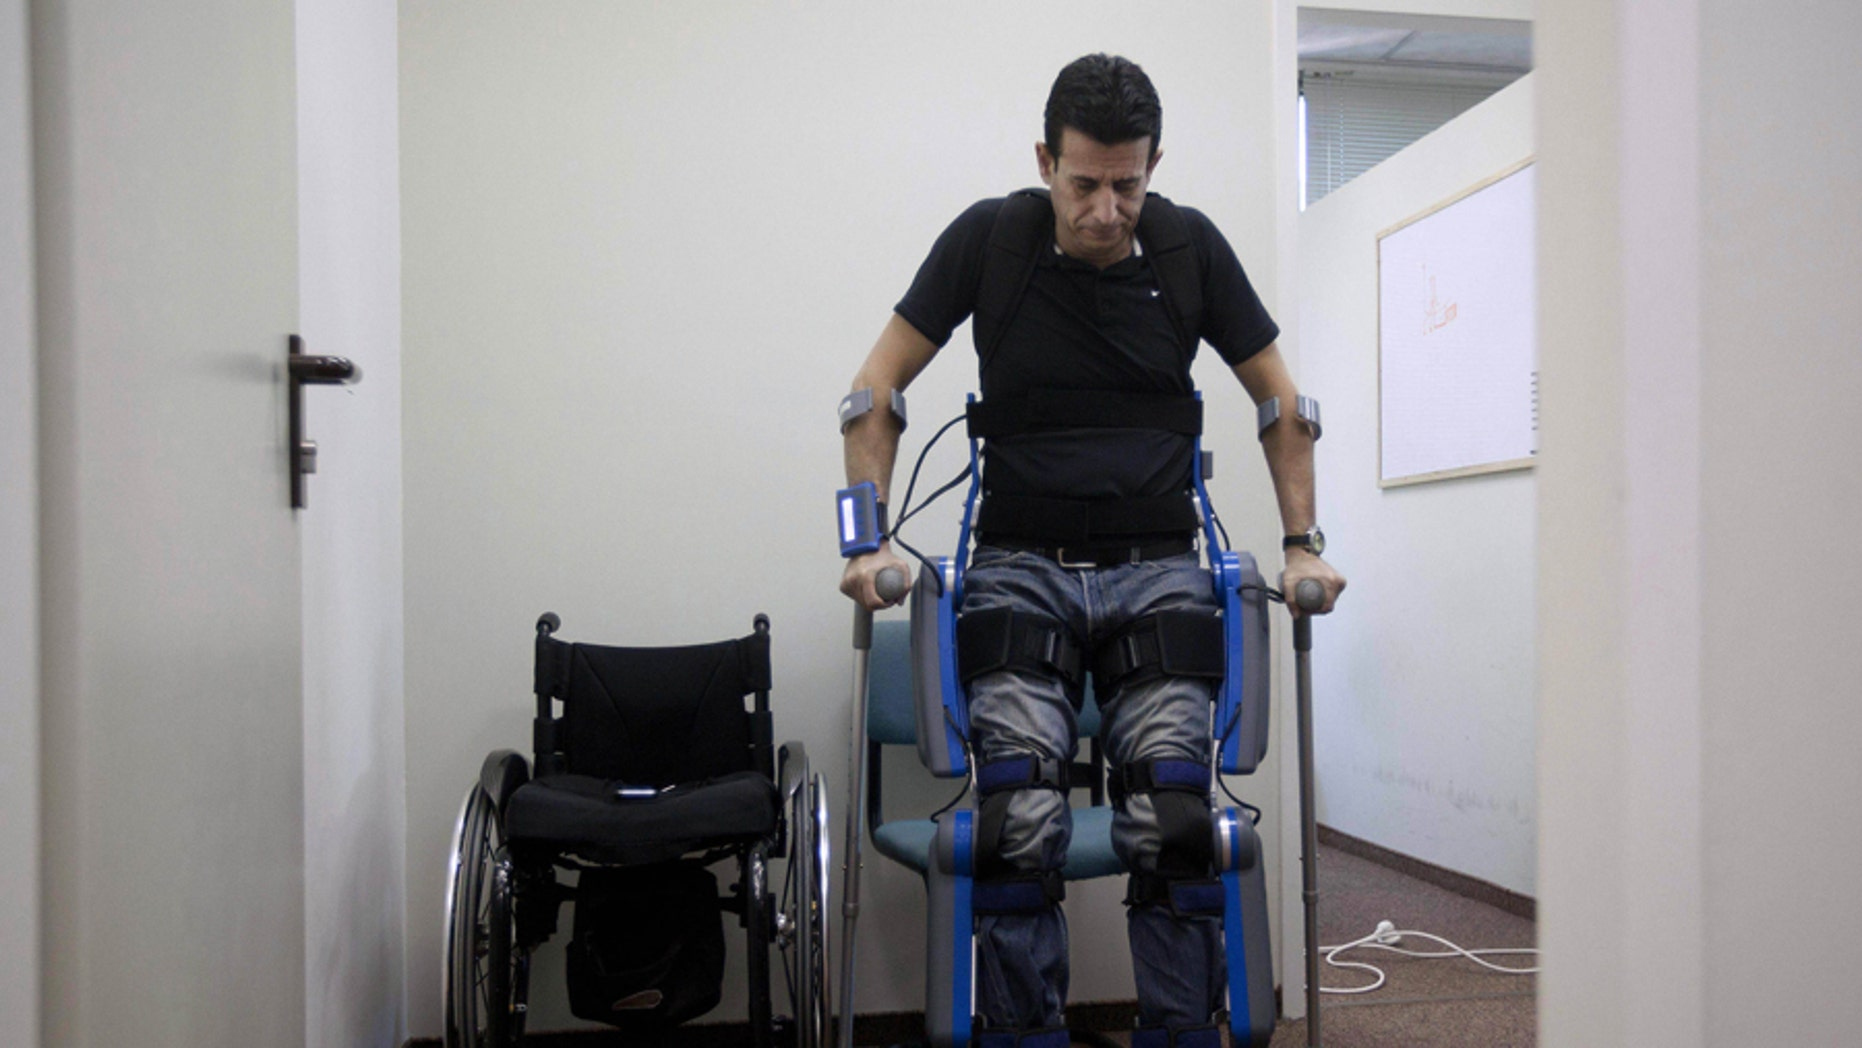 Israeli Device Lets Paralyzed People Stand, Walk | Fox News